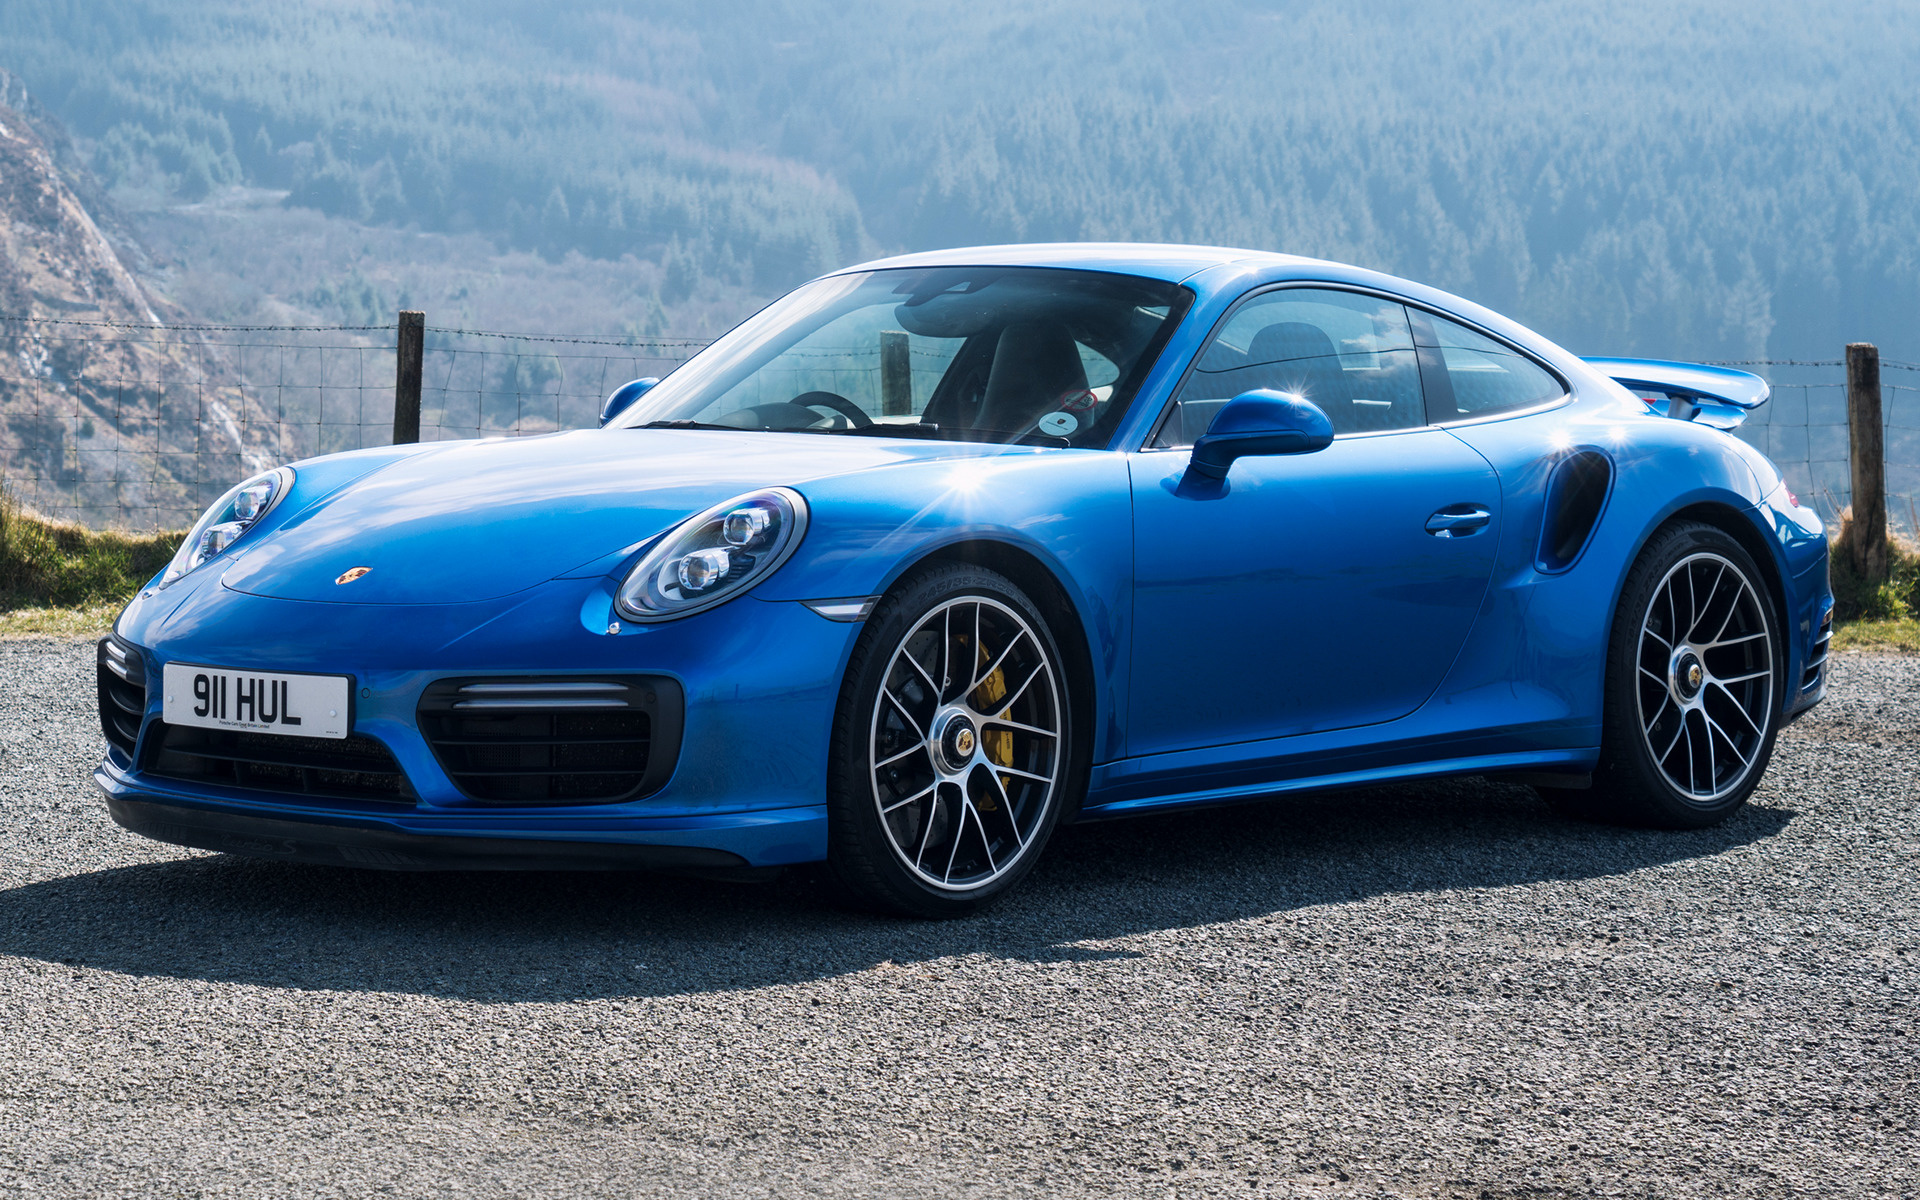 911 Carrera Gts >> 2016 Porsche 911 Turbo S (UK) - Wallpapers and HD Images ...